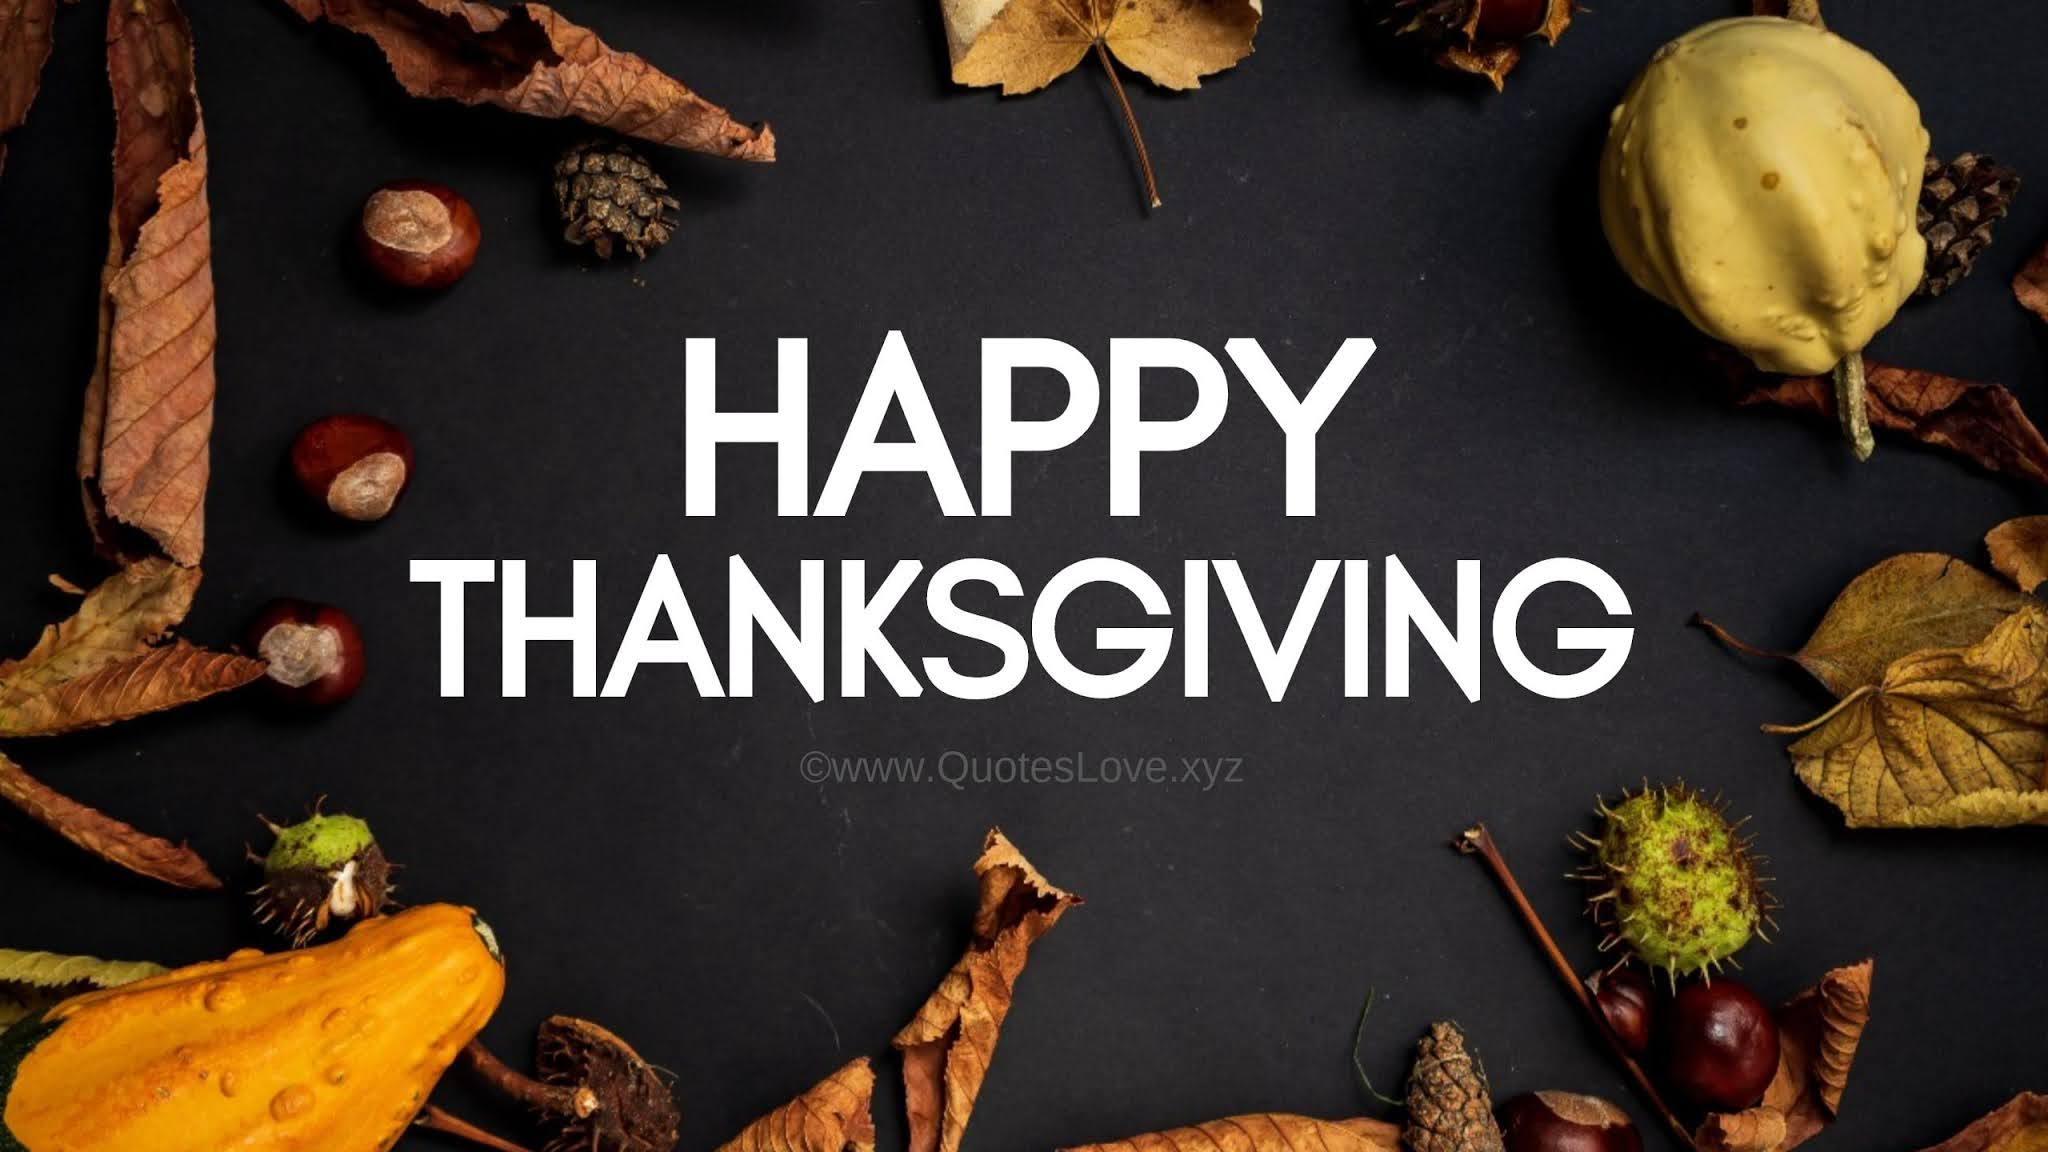 Happy Thanksgiving Quotes, Sayings, Wishes, Greetings, Messages, Images, Poster, Pictures, Photos